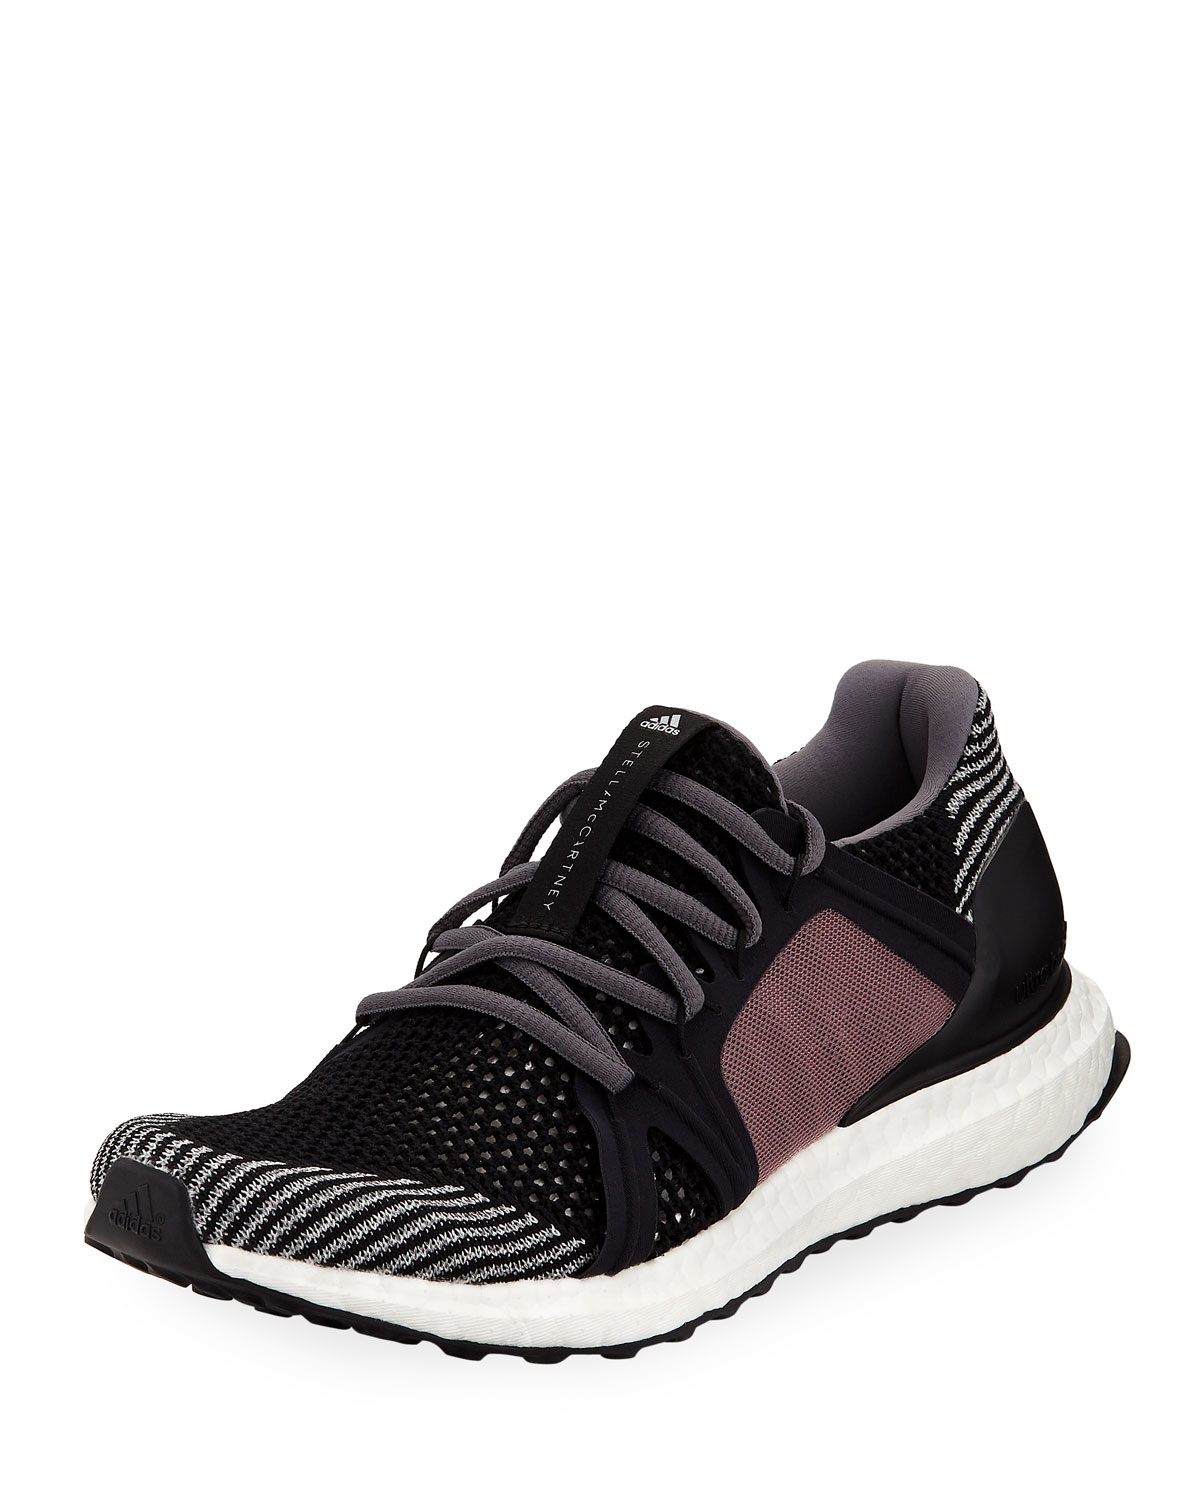 luxury aesthetic Buy Authentic 2019 best sell adidas by Stella McCartney UltraBOOST Flat-Knit Trainer/Runner Sneakers